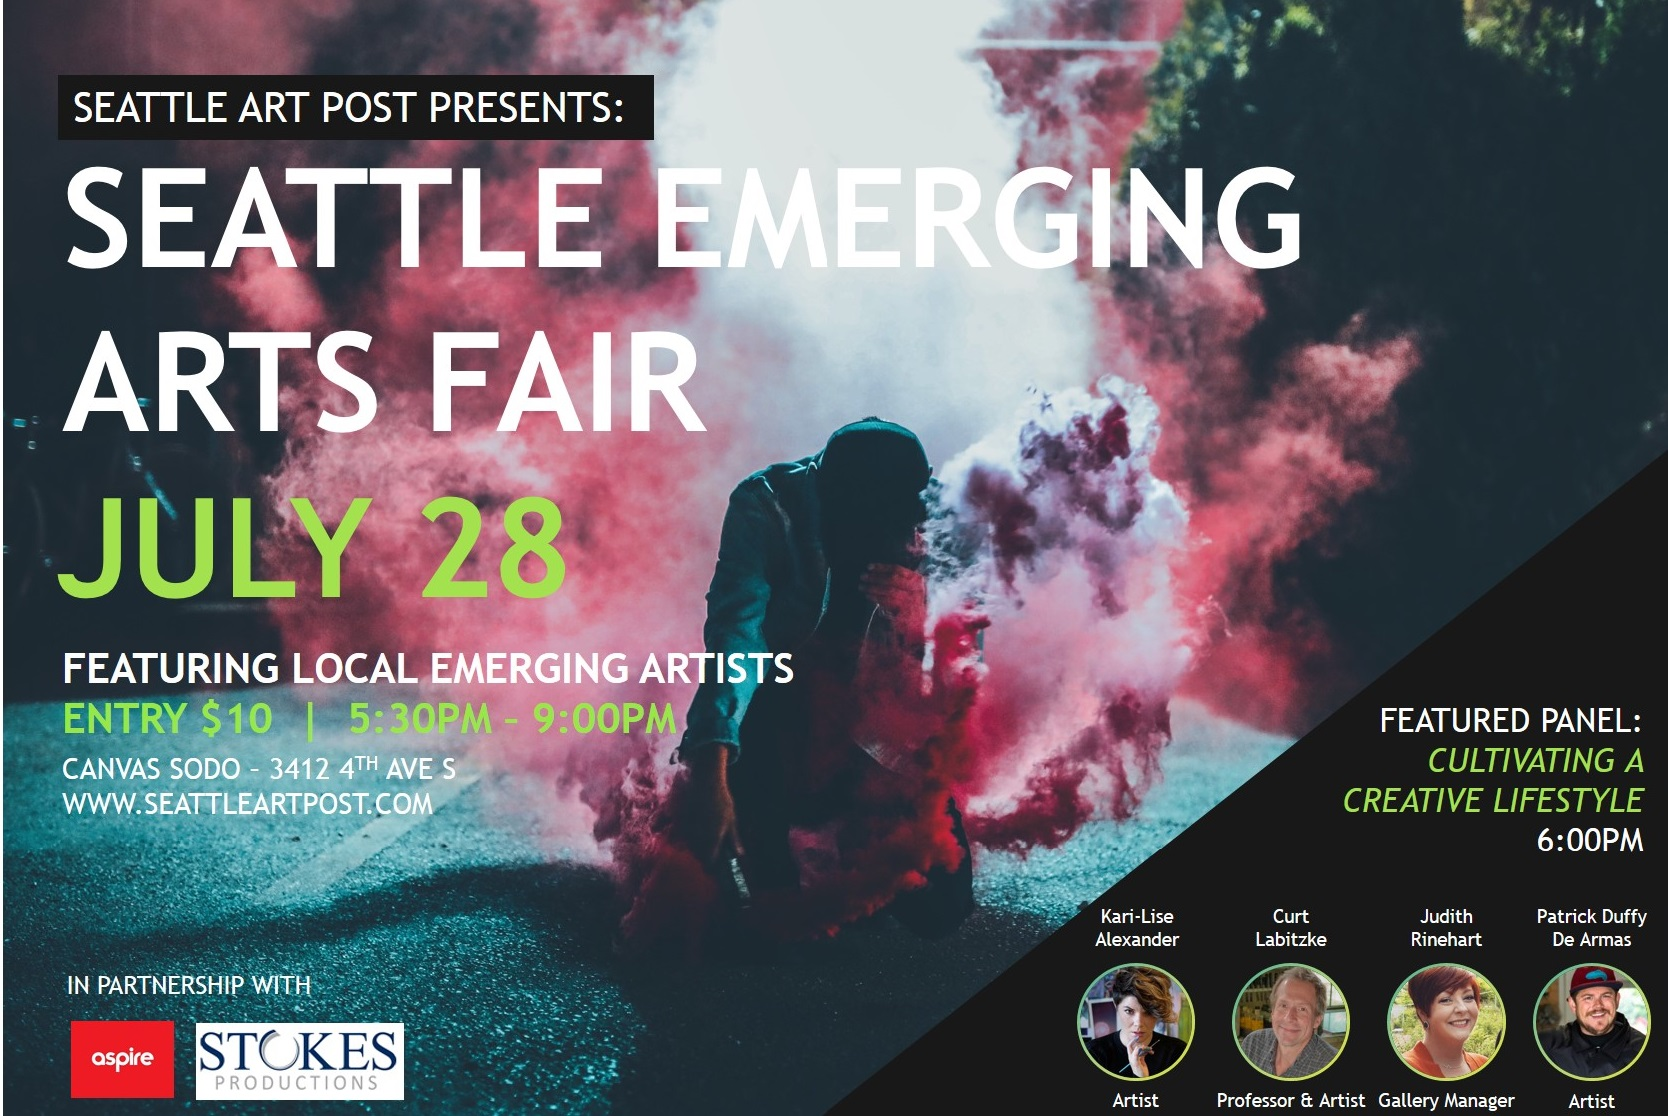 Art Calendar Seattle : Seattle emerging arts fair art calendar local